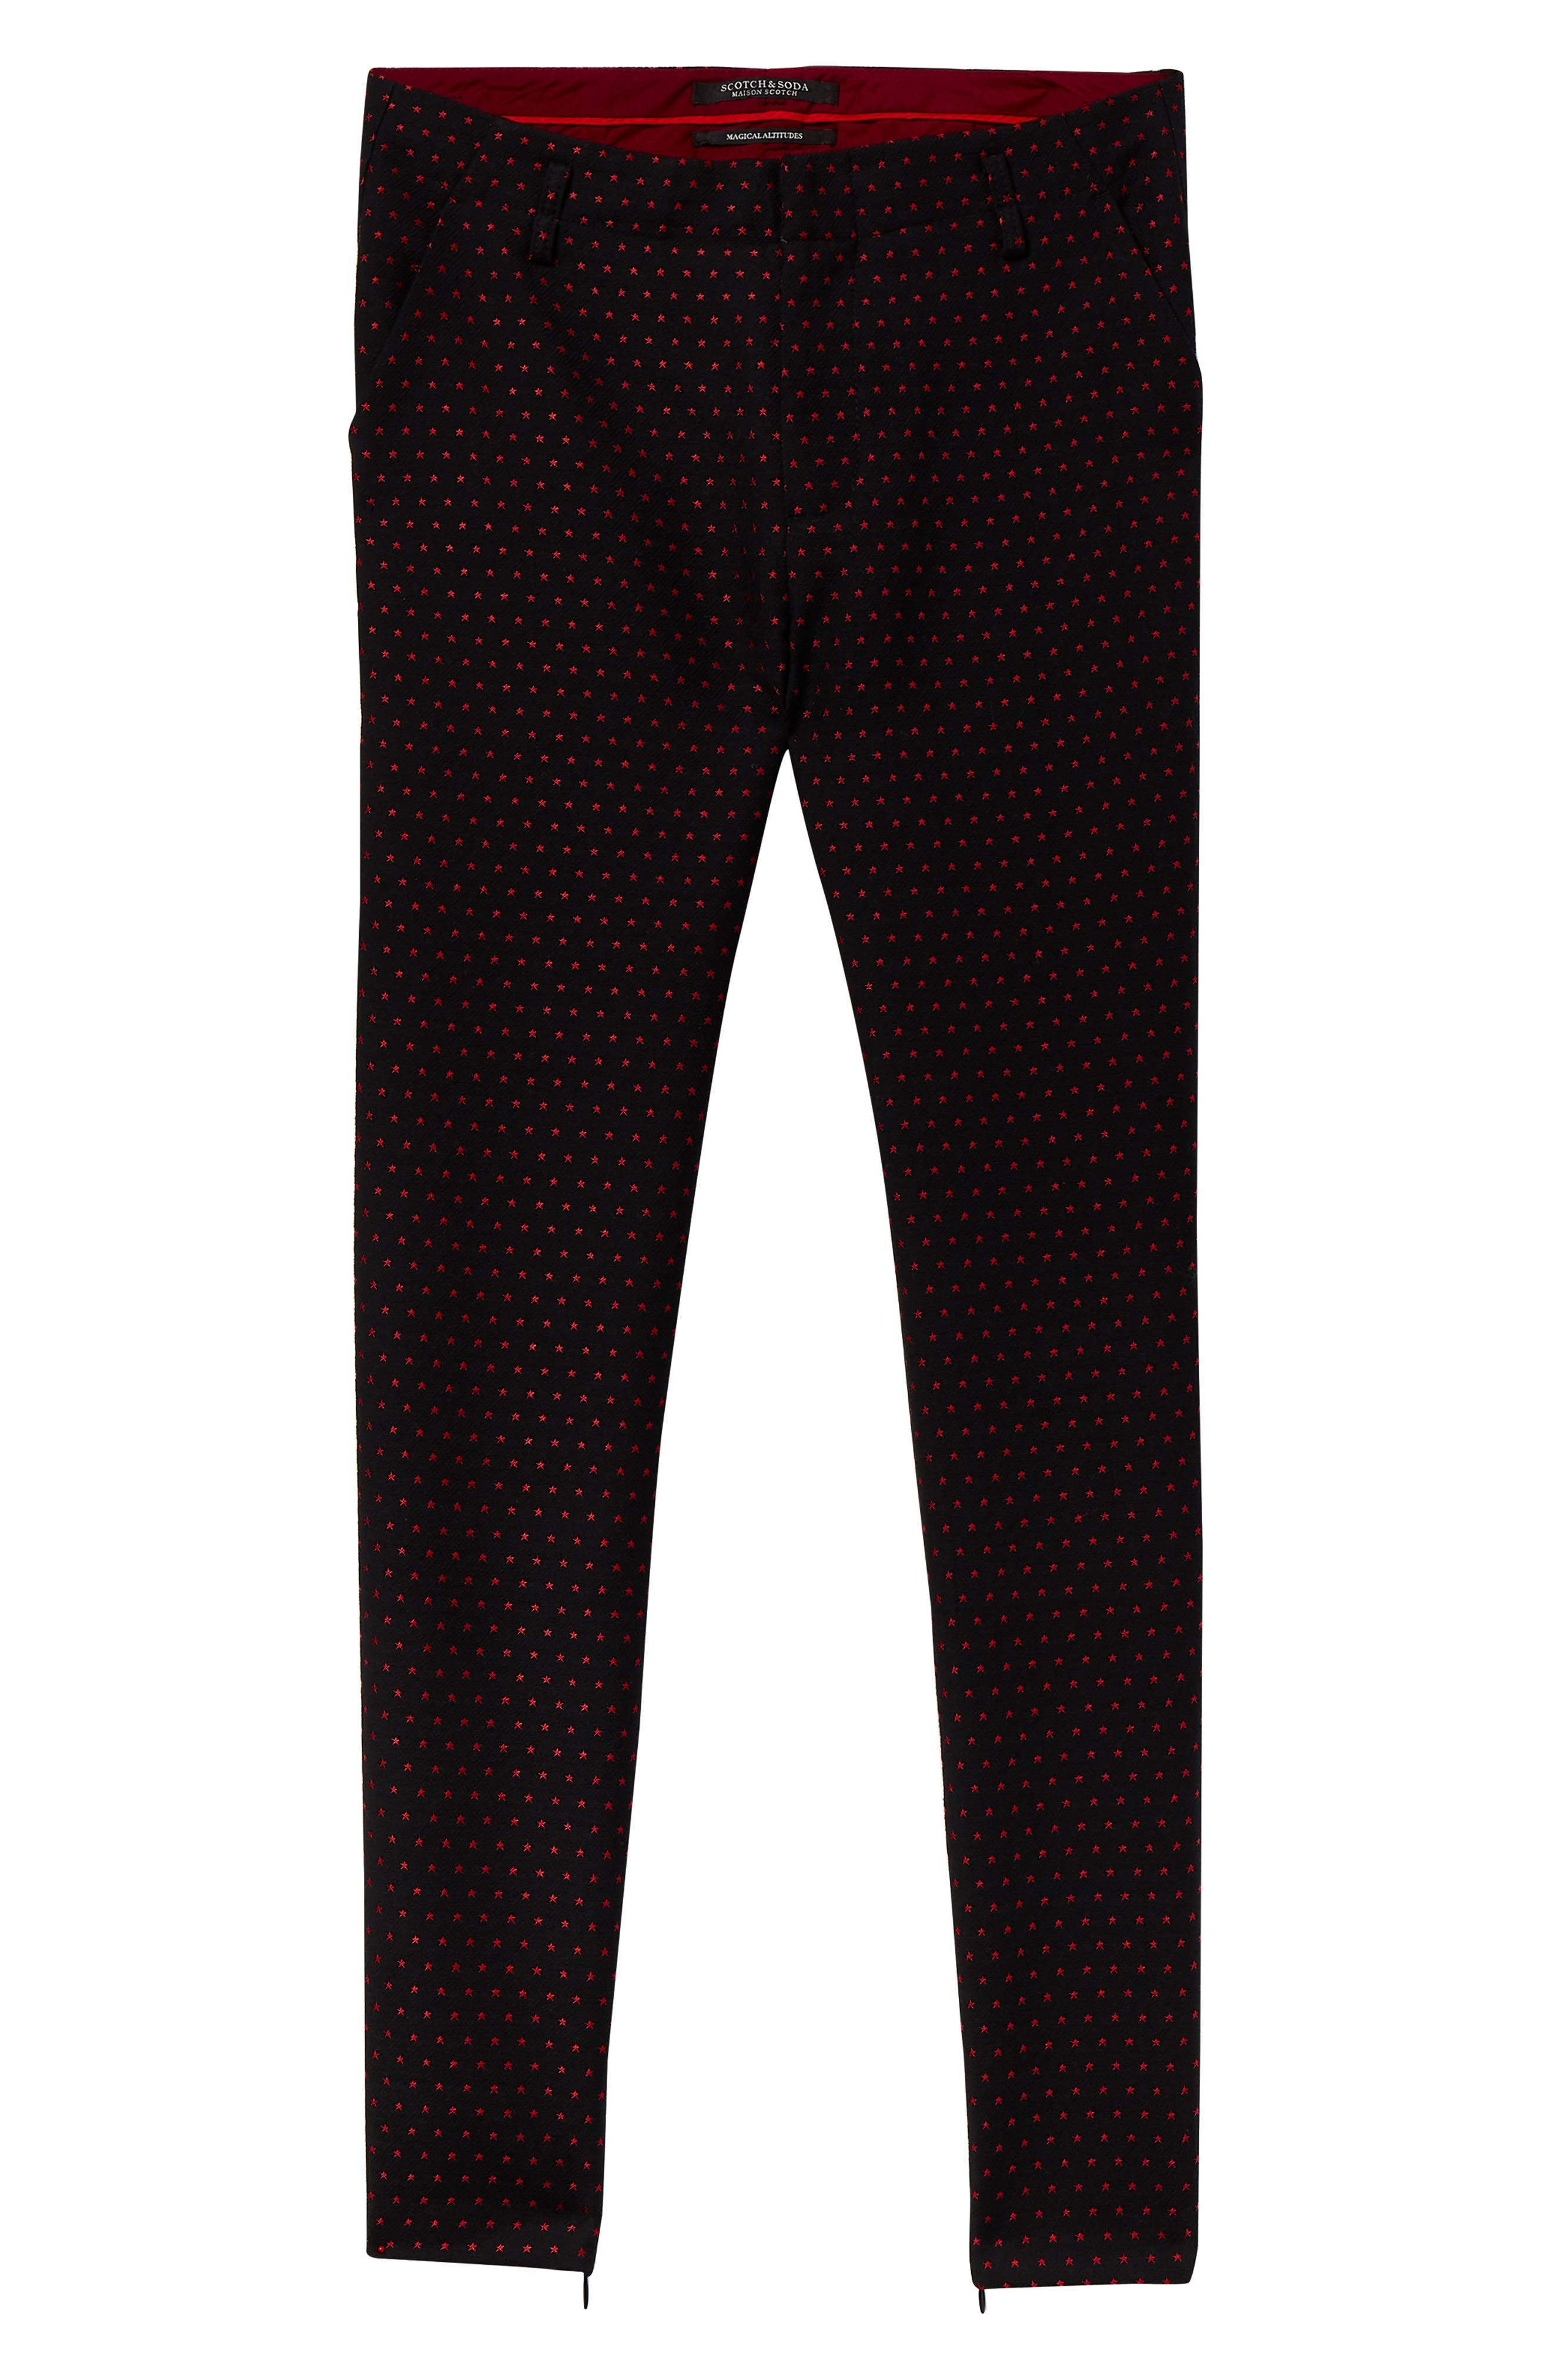 Starry Jacquard Tailored Stretch Pants,                             Alternate thumbnail 4, color,                             BLACK W/ SMALL STAR PRINT